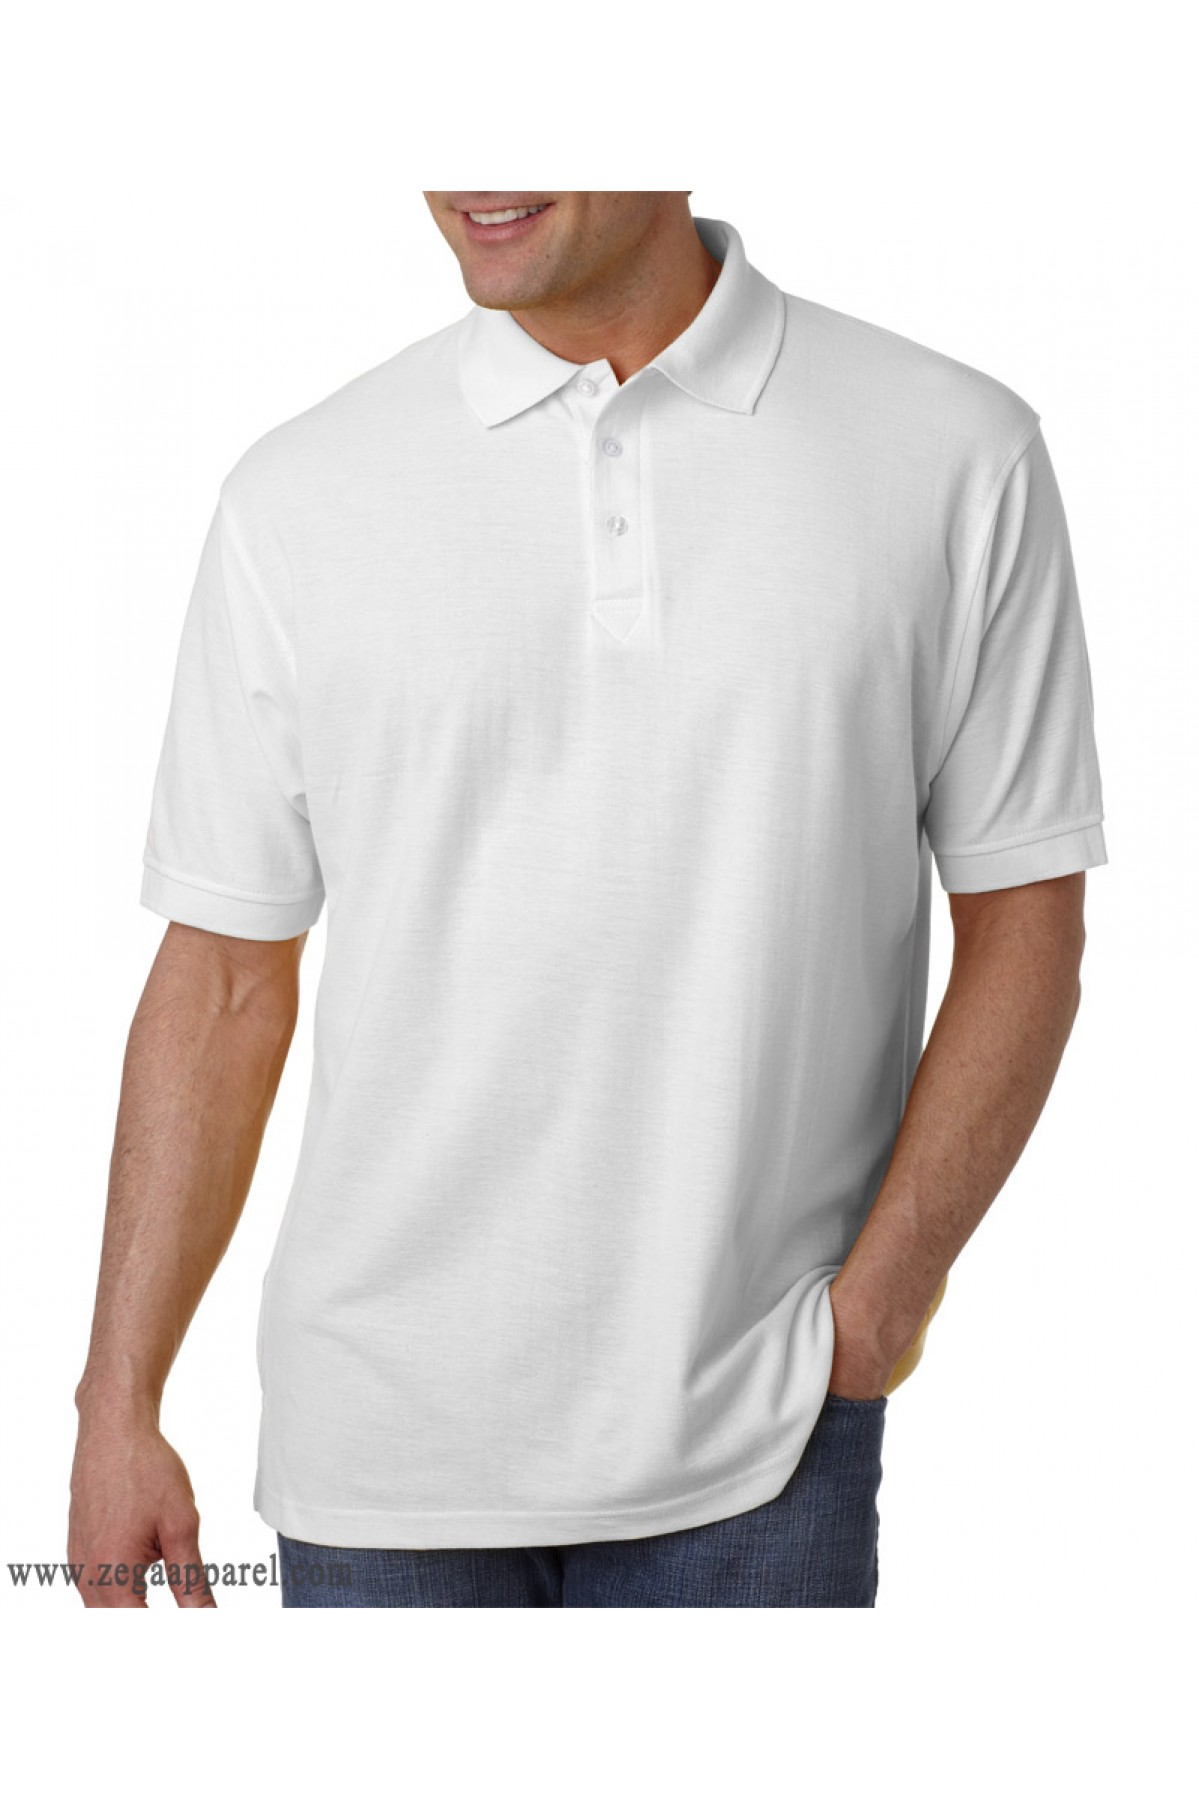 Cotton performance polo shirts zega apparel brand for Custom polo shirts canada